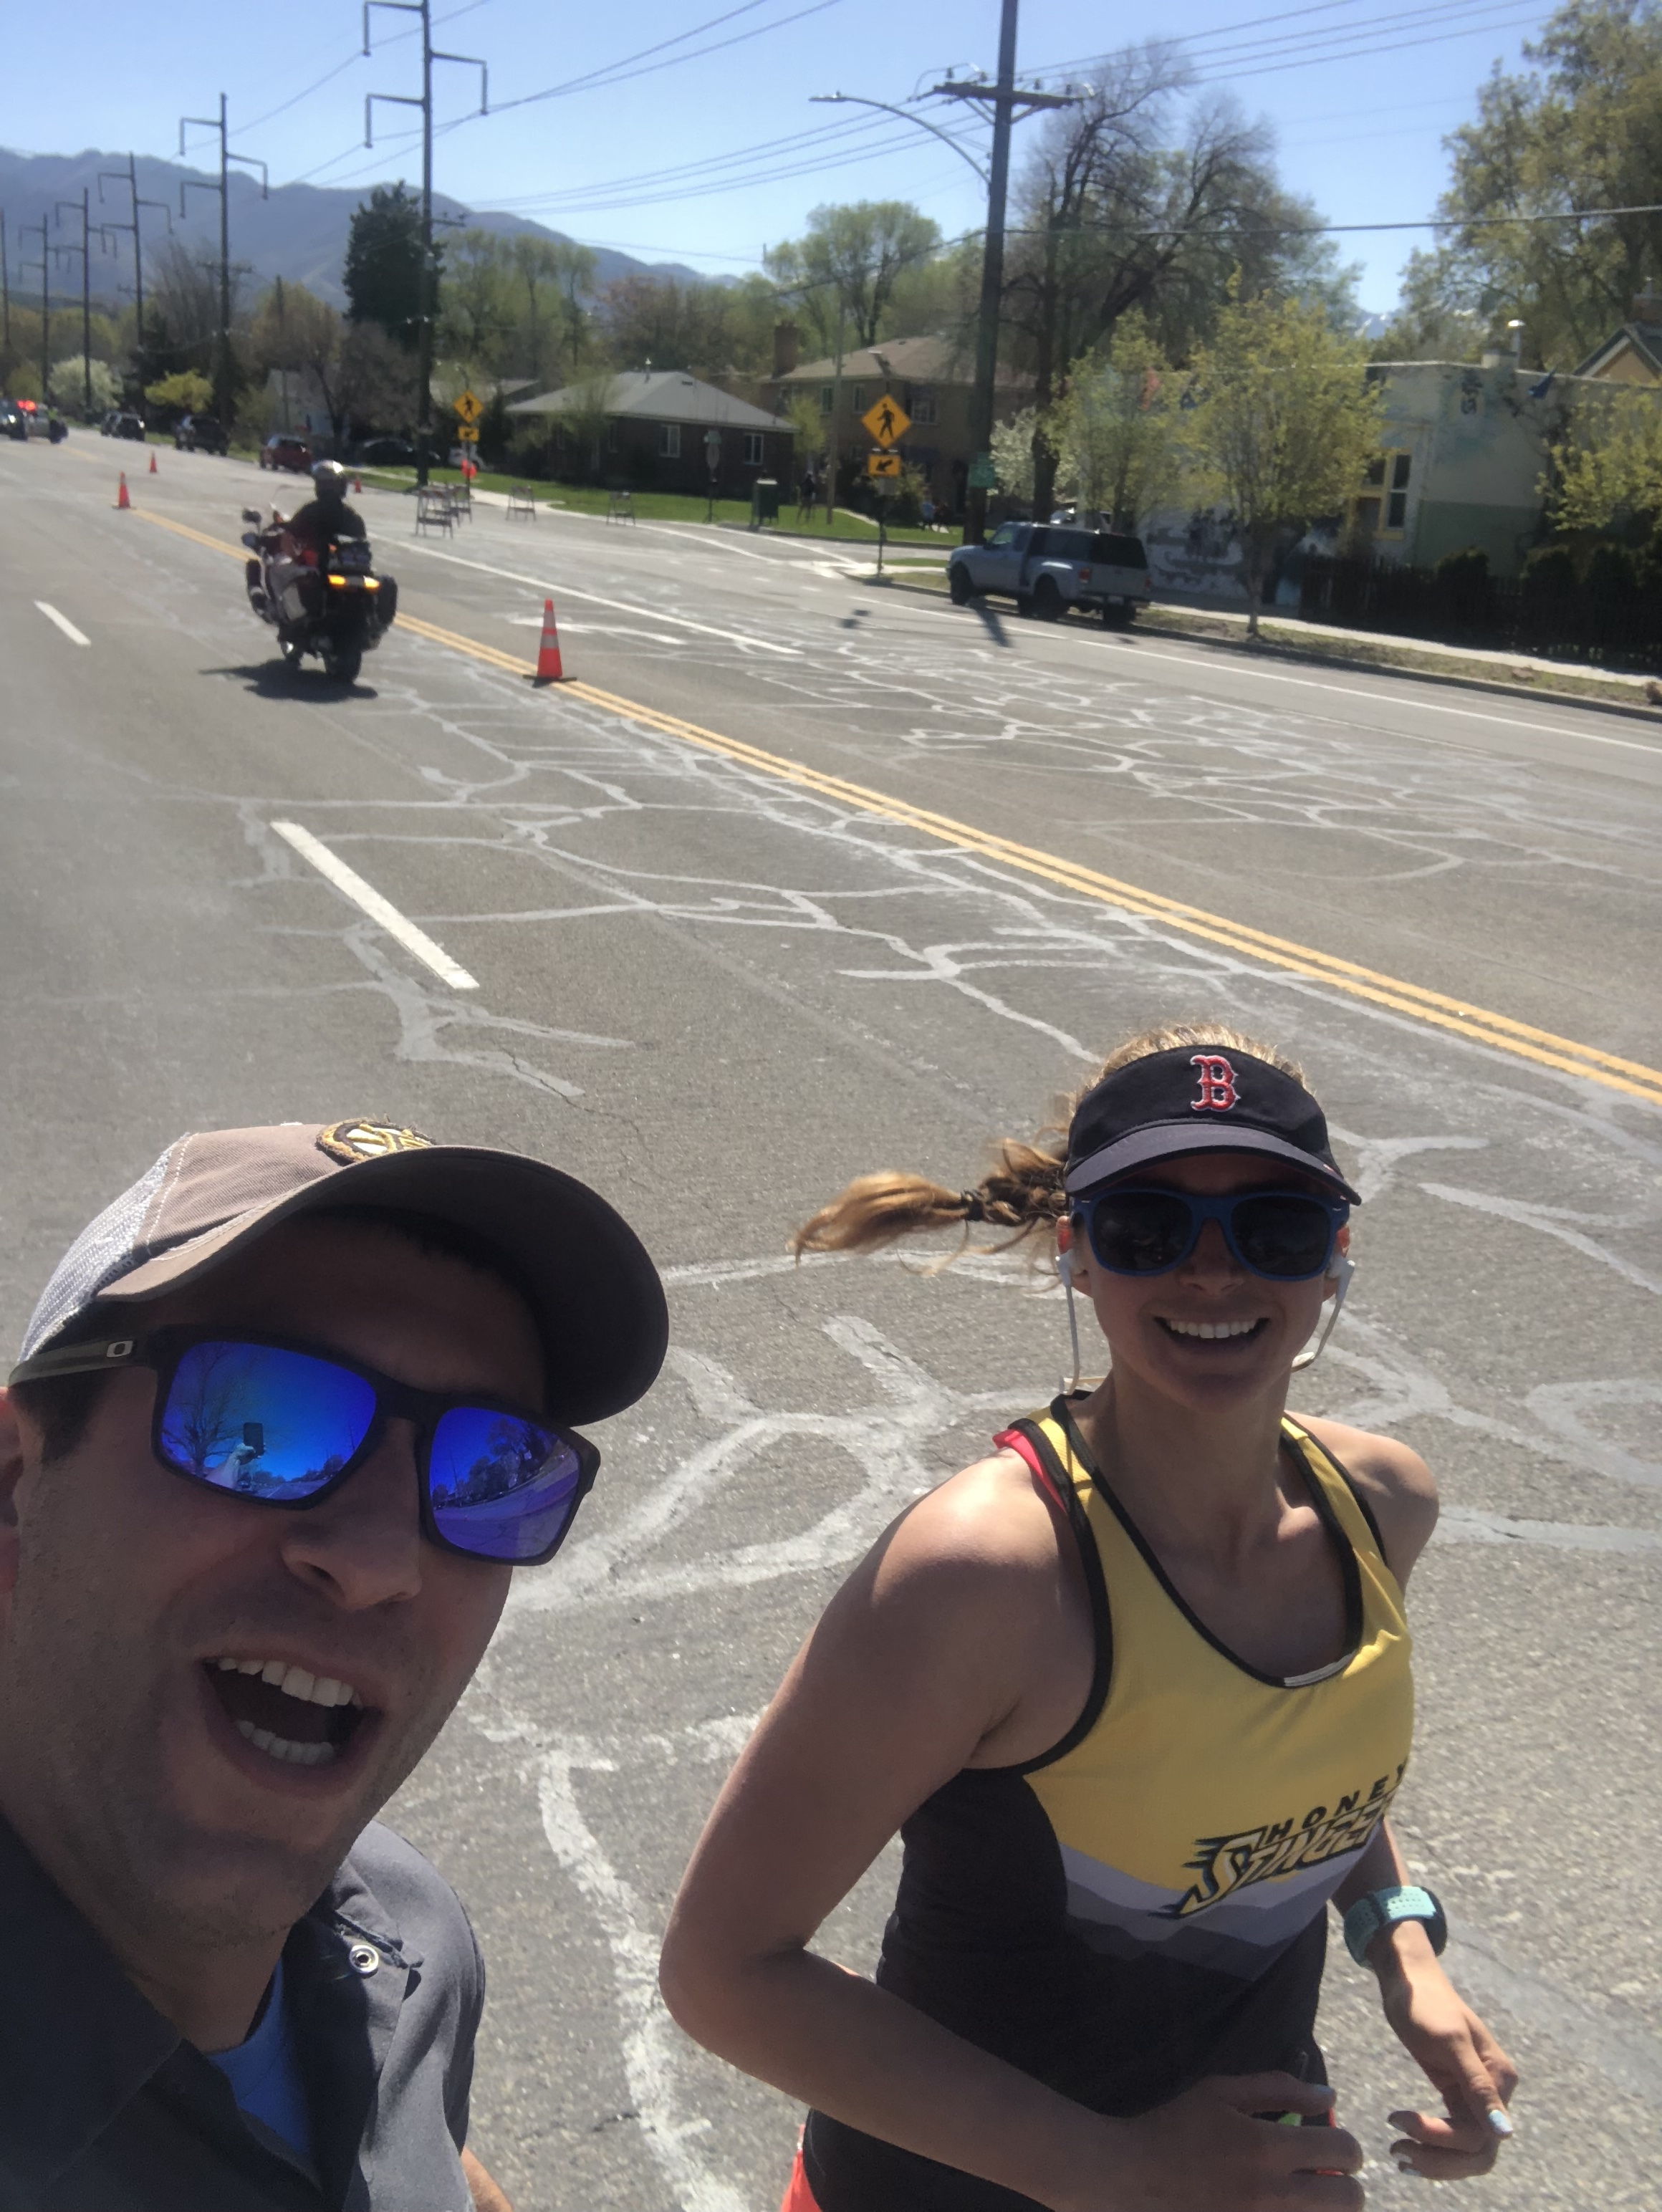 Finishing it out strong at mile 25!